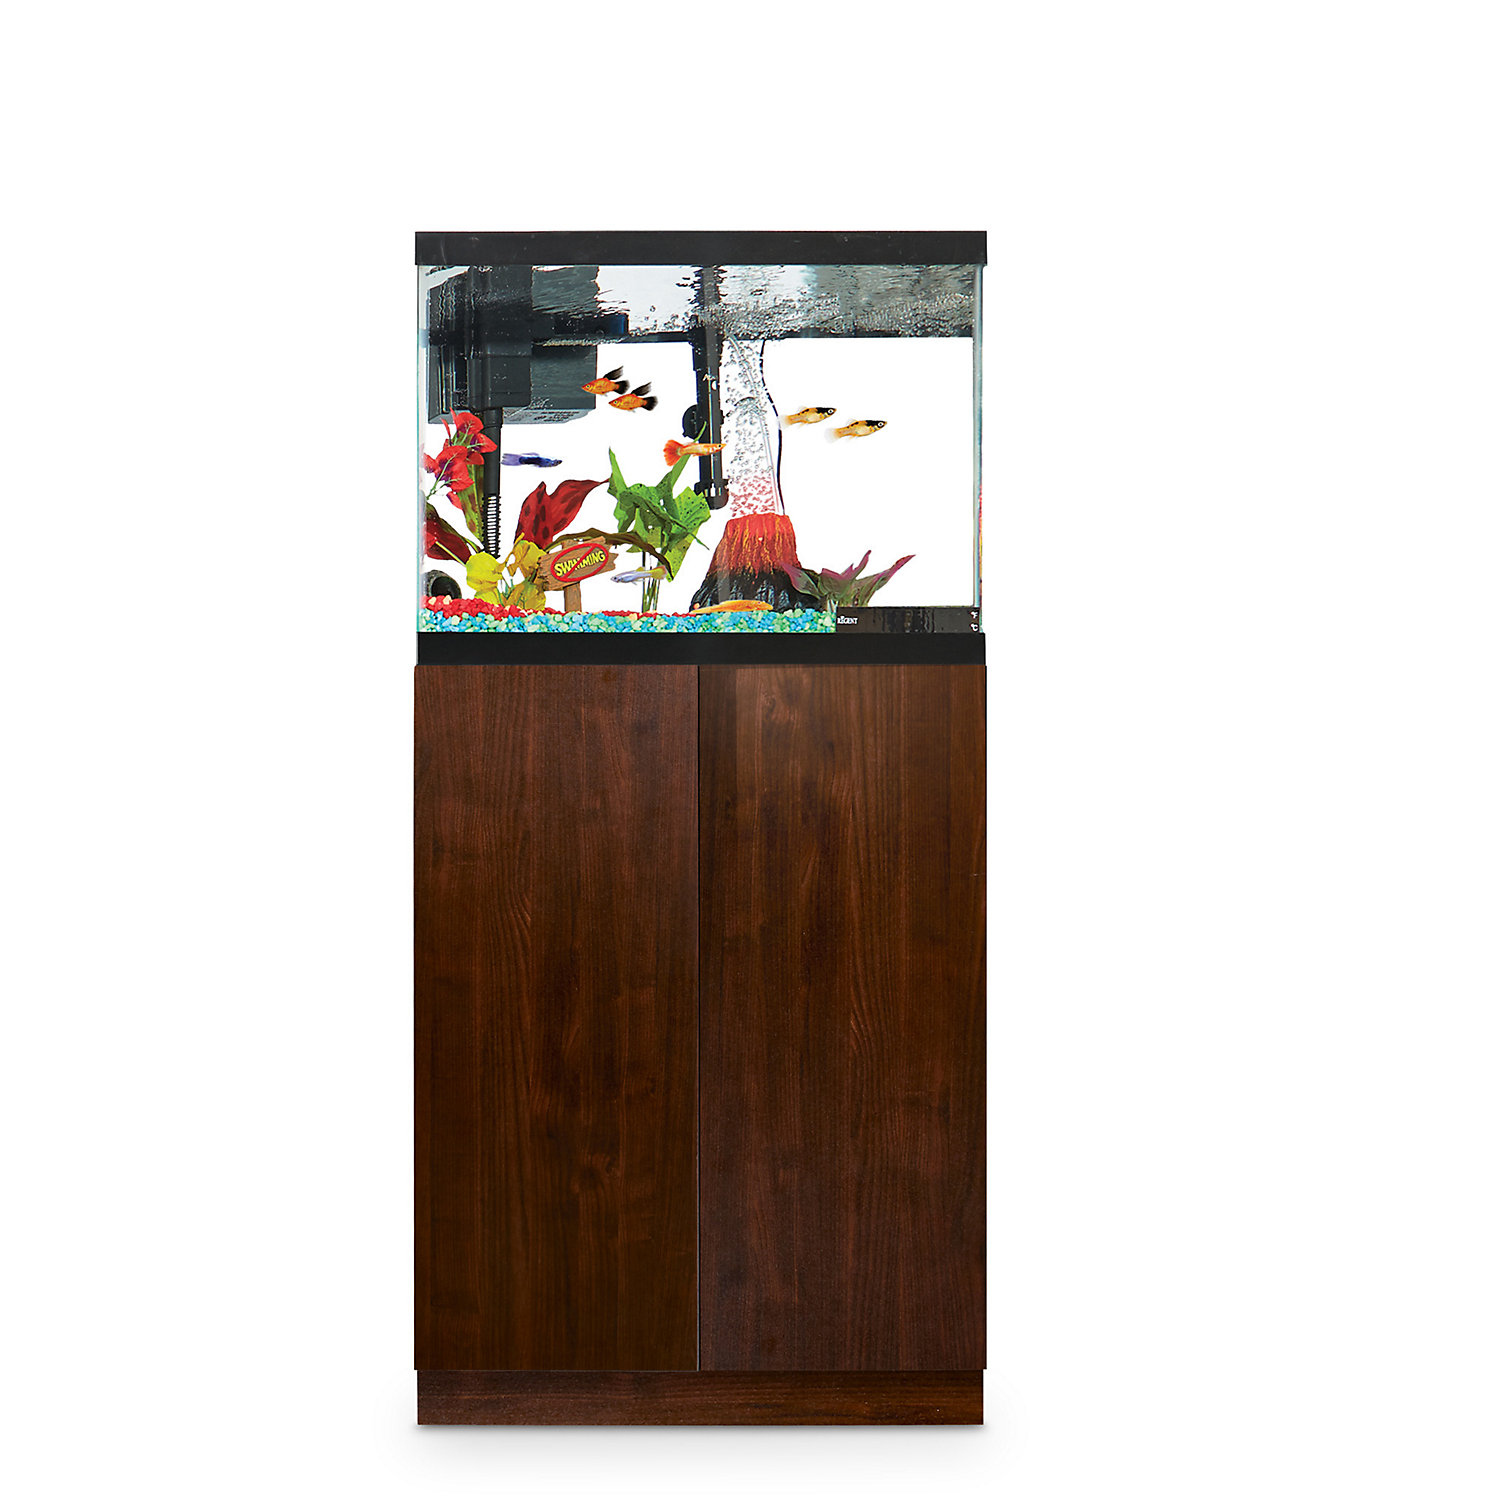 Imagitarium Faux Woodgrain Fish Tank Stand Up to 20 Gal.